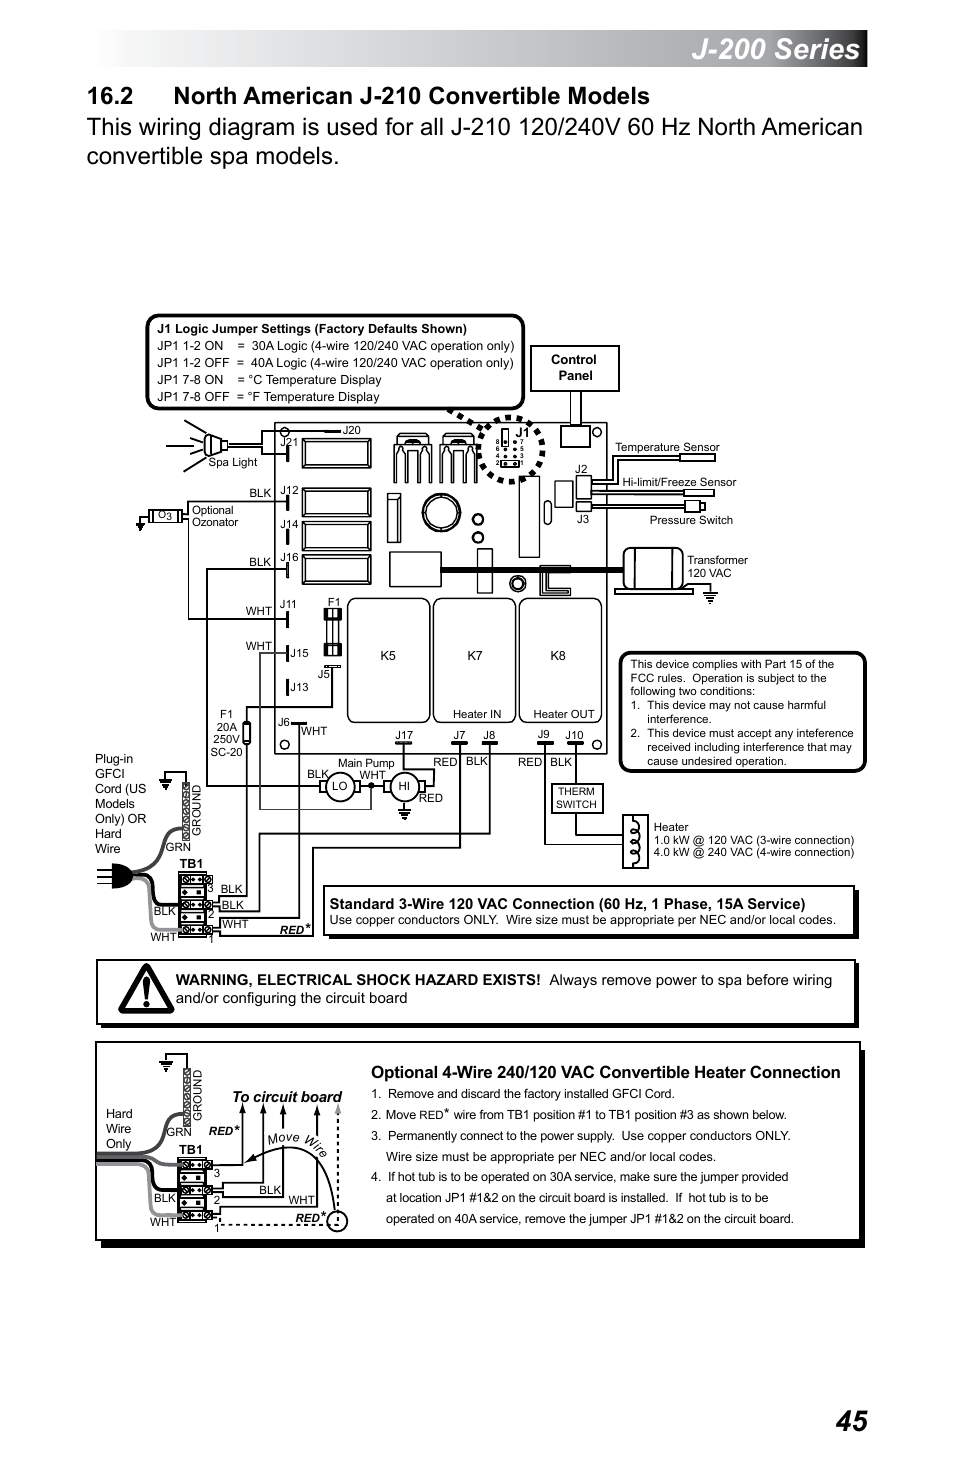 2 North American J 210 Convertible Models 200 Series Jacuzzi 3 Wire 240v Wiring Diagram 230 User Manual Page 49 60